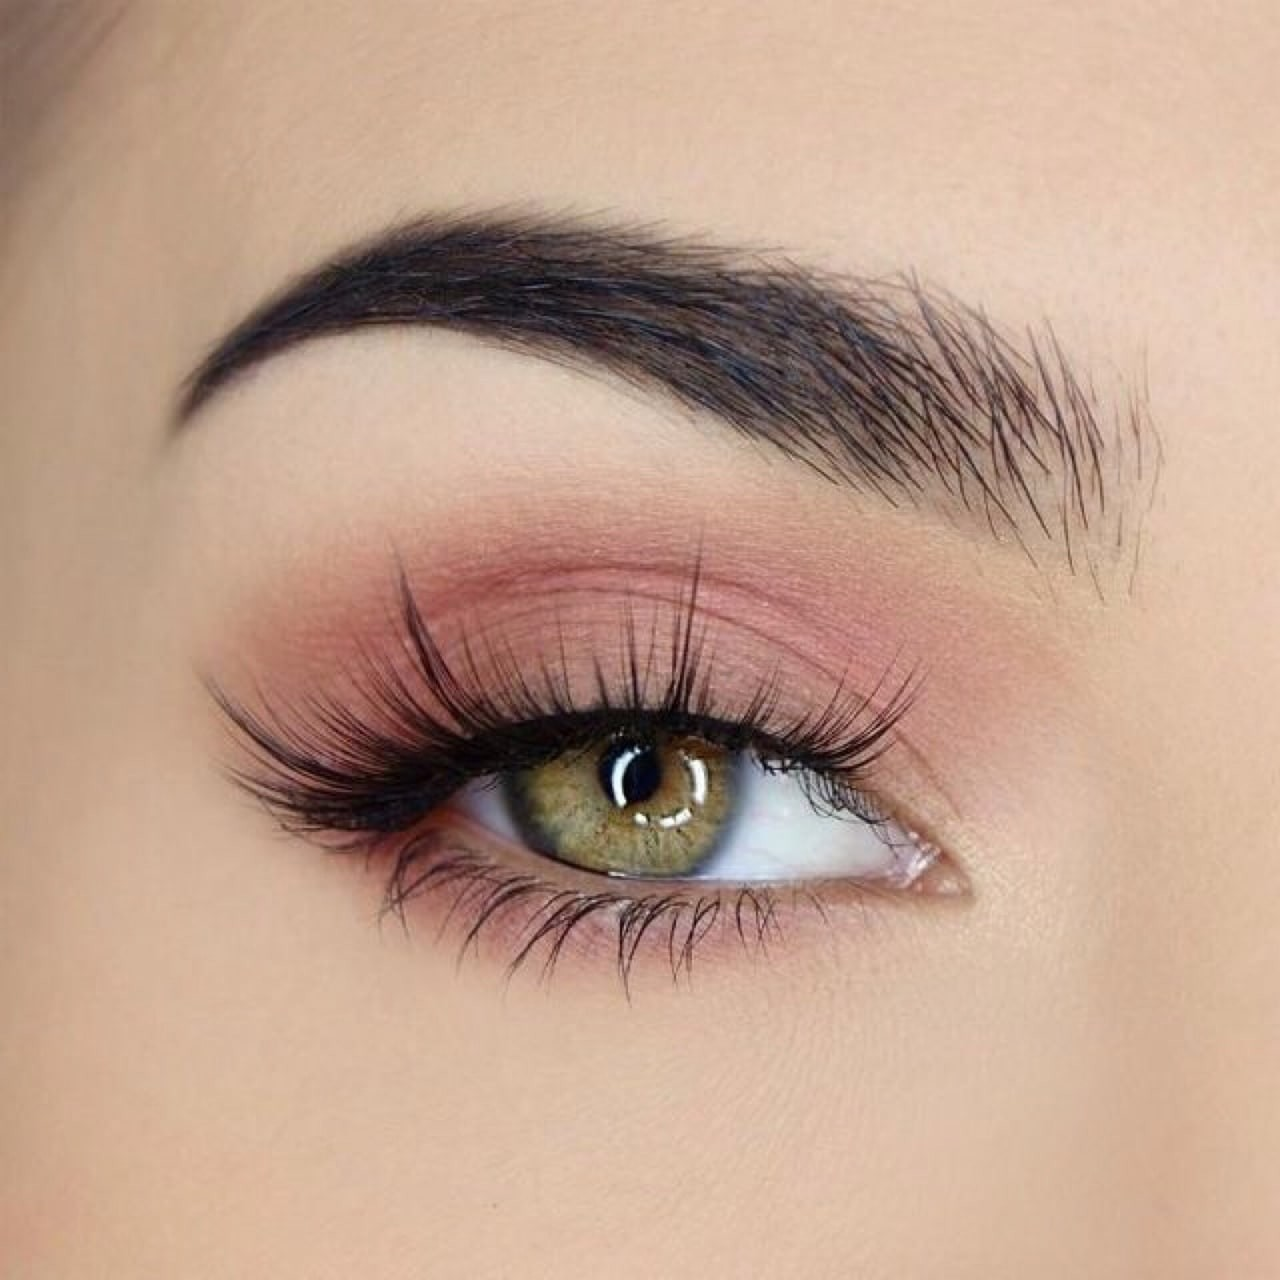 close up of womans eye, with nude eyeshadow and false eyelashes.